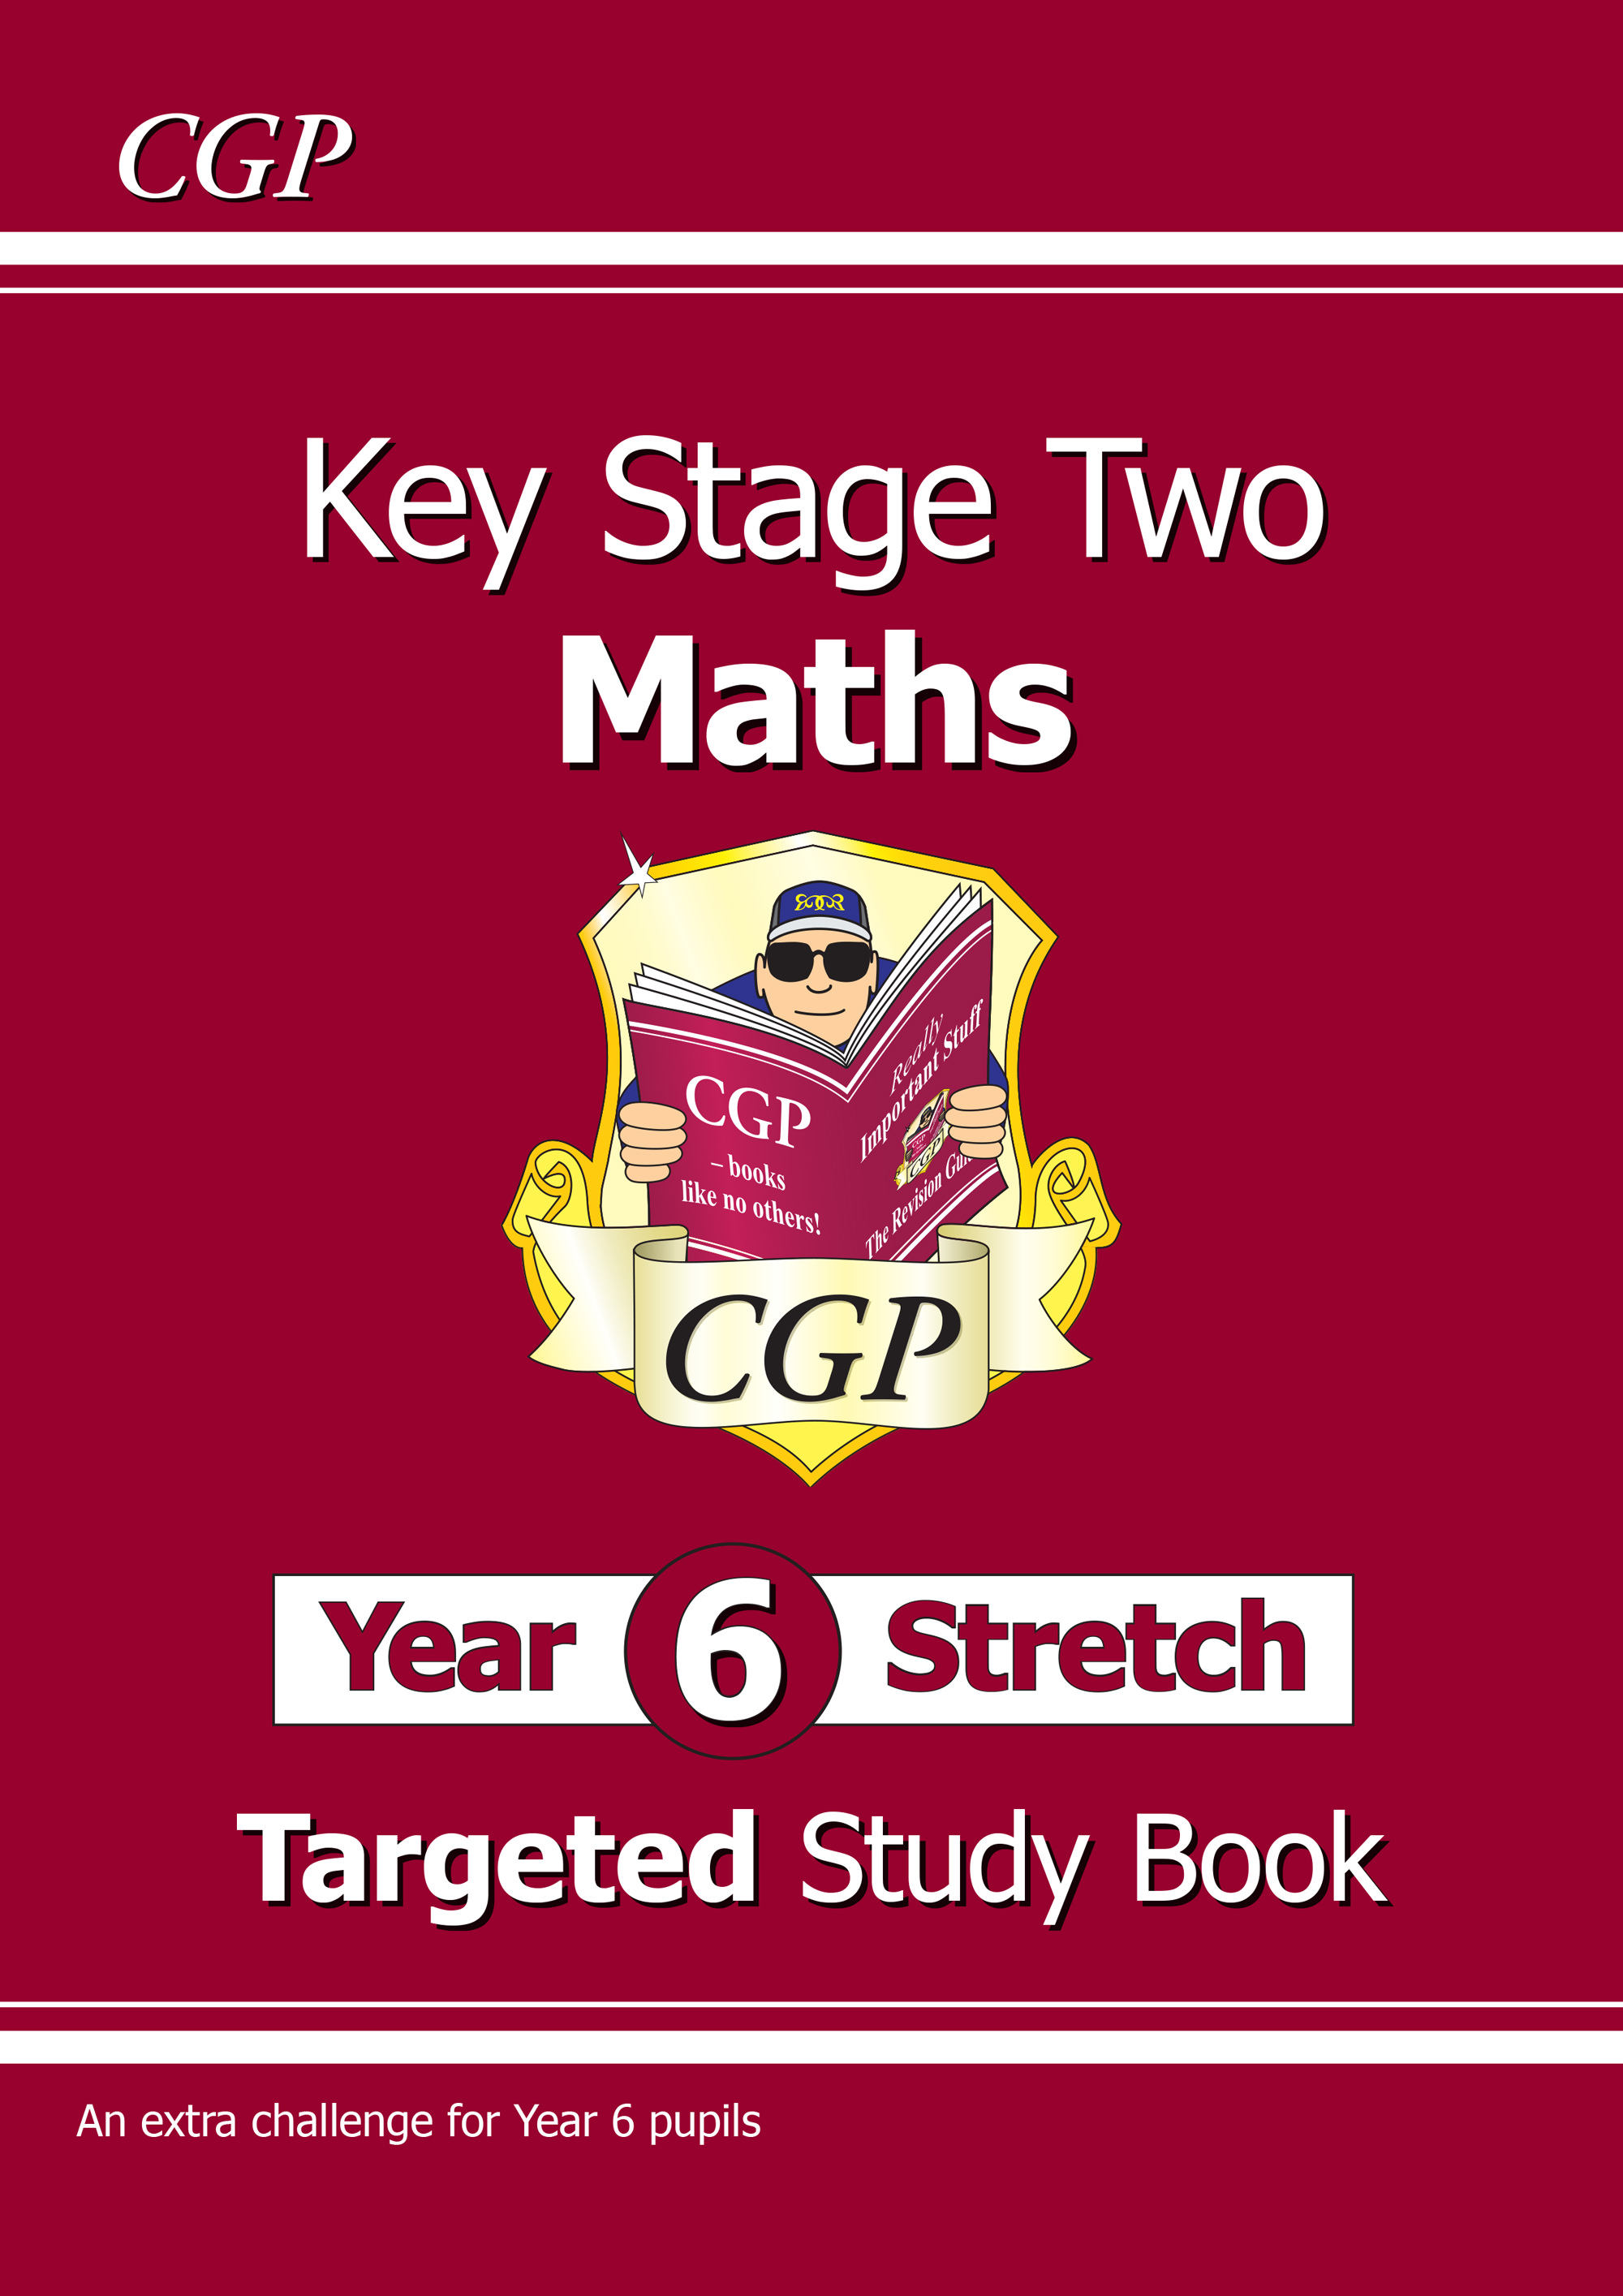 M6HR22 - KS2 Maths Targeted Study Book: Challenging Maths - Year 6 Stretch